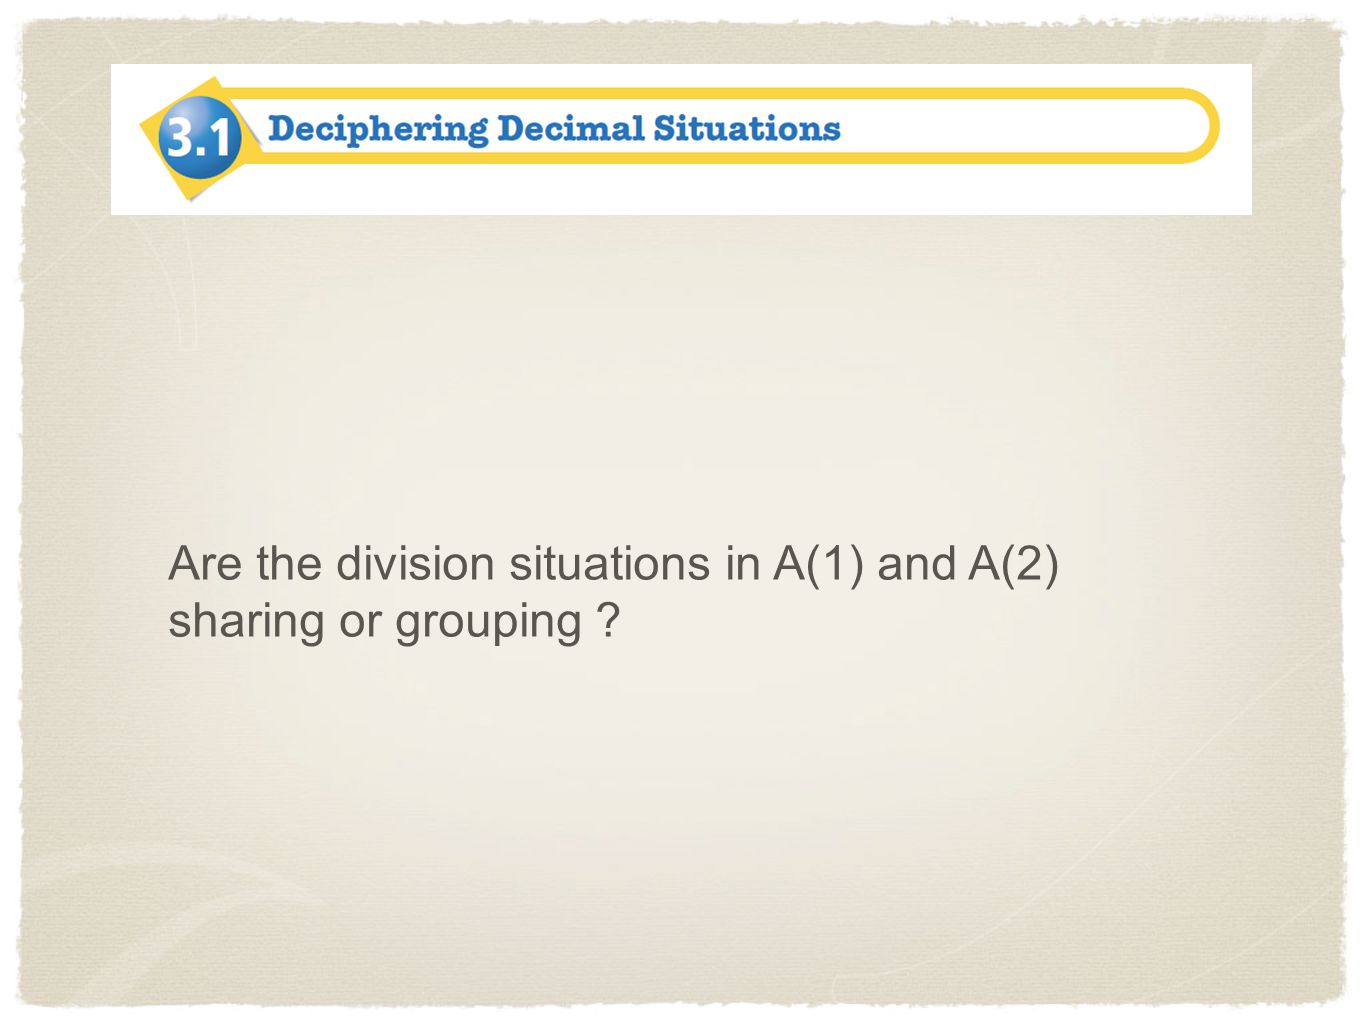 Are the division situations in A(1) and A(2) sharing or grouping